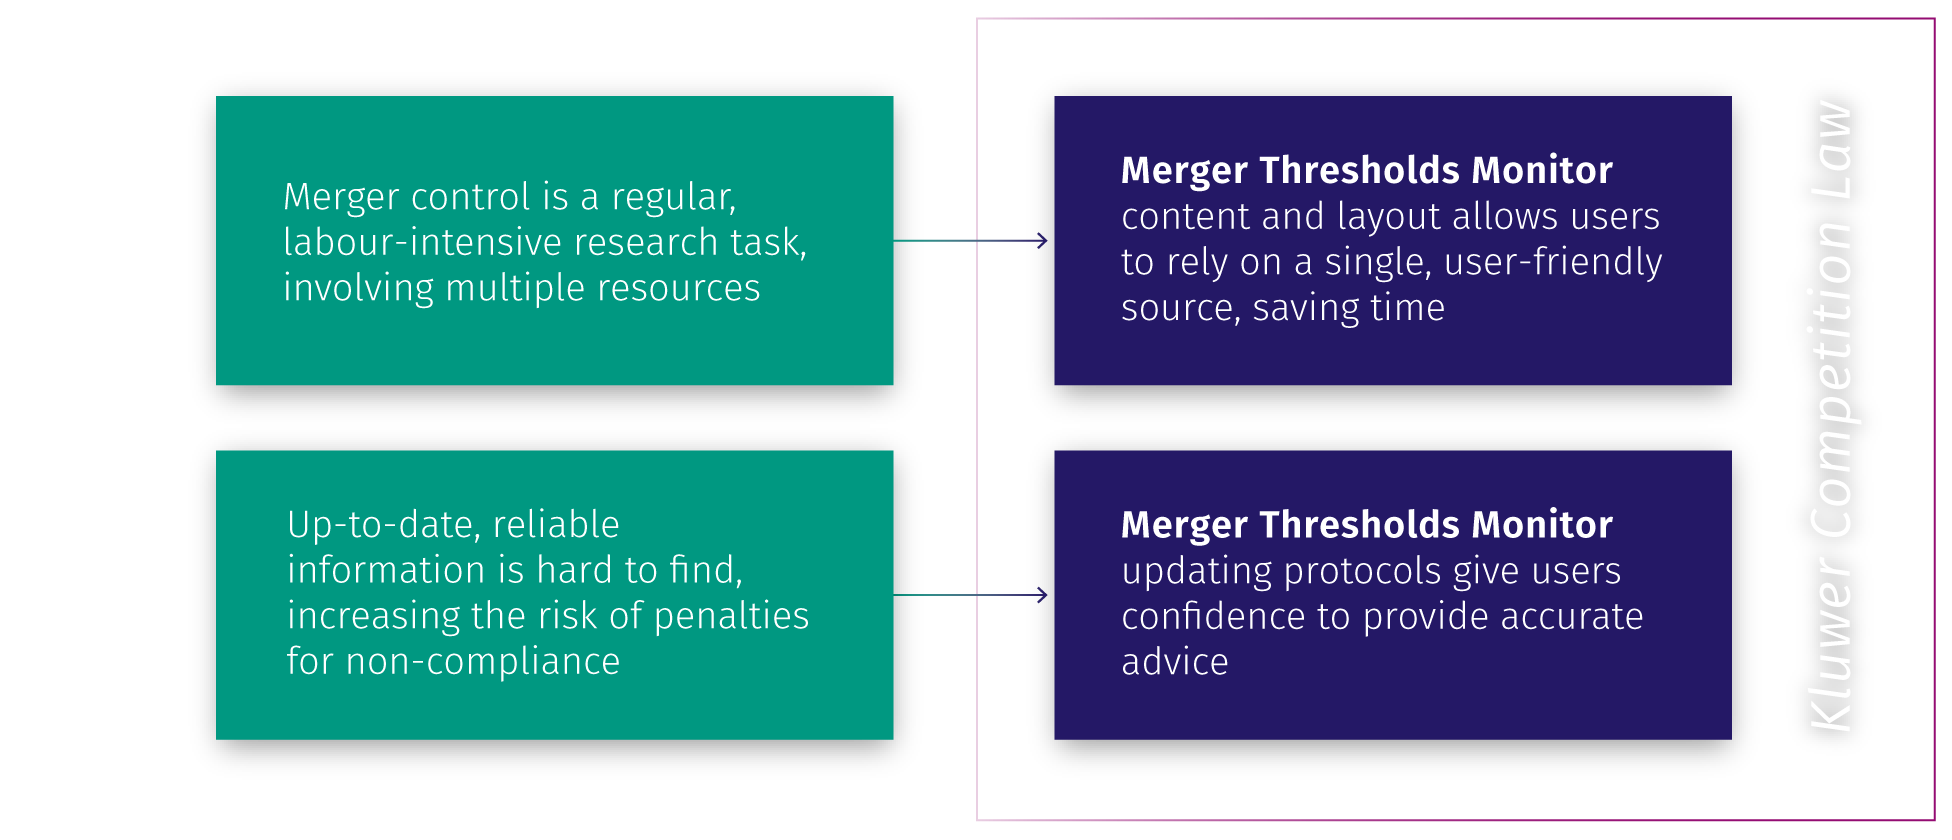 Merger Thresholds Monitor overview